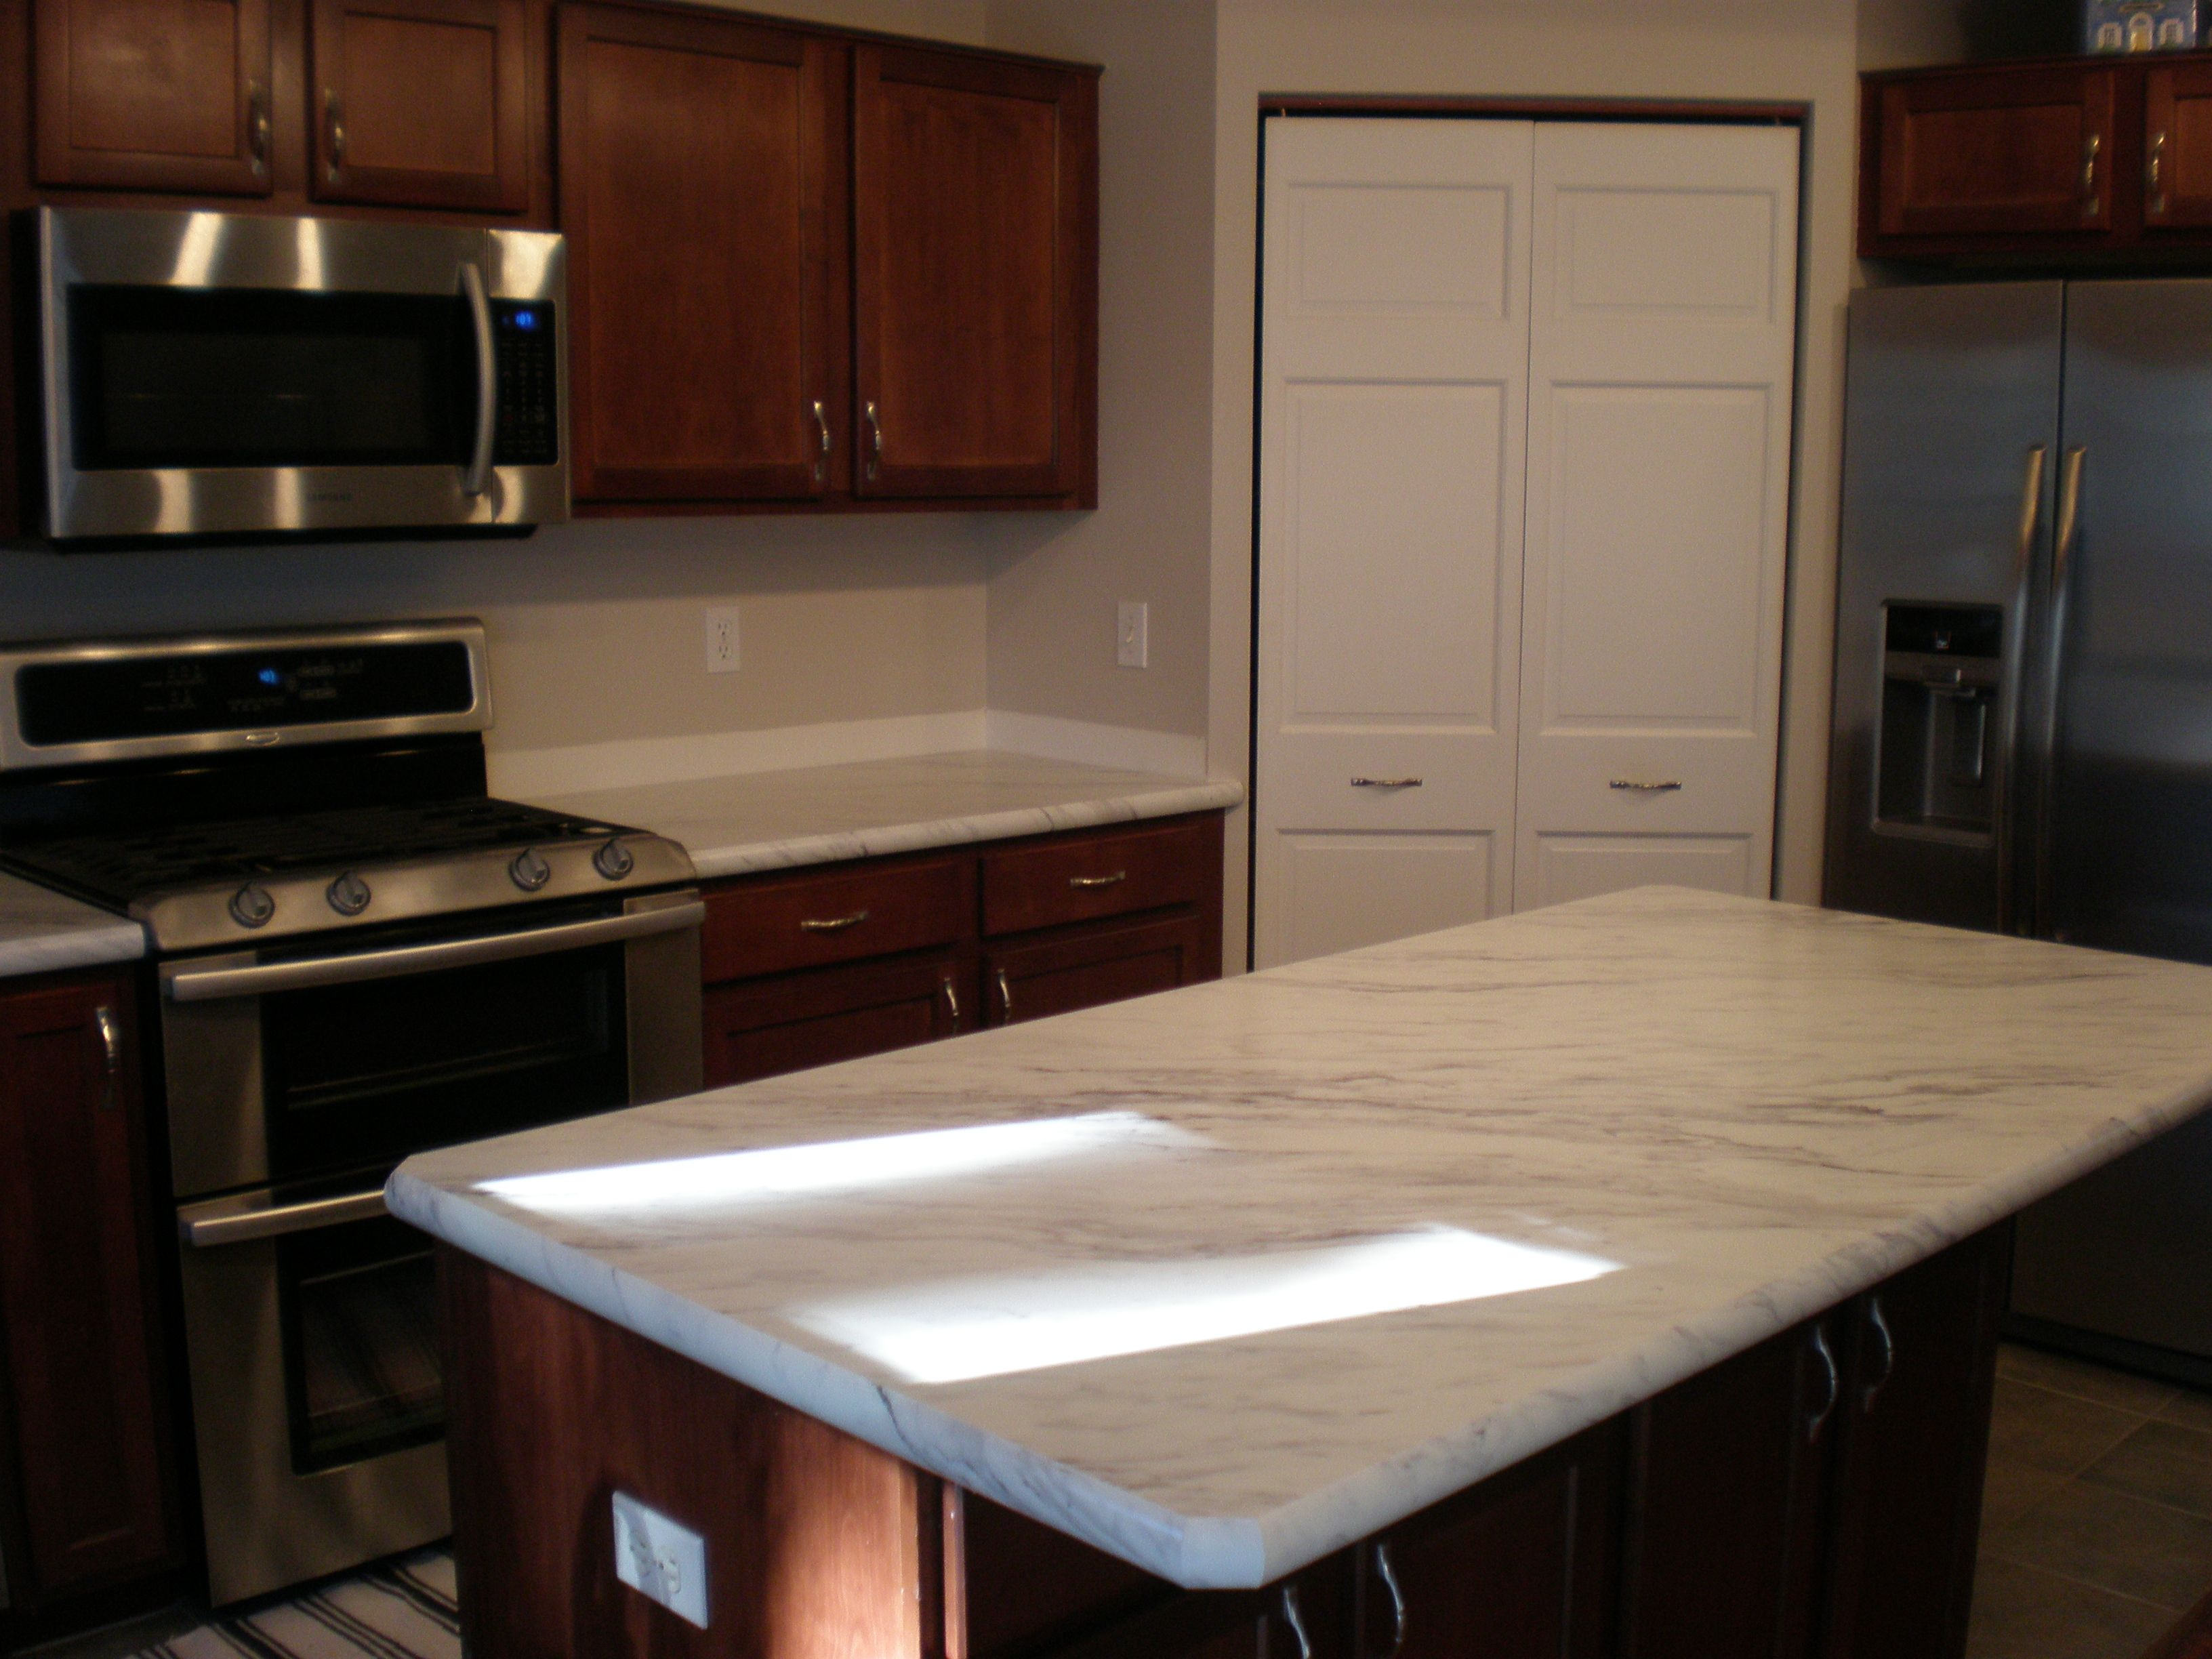 my new countertops have transformed my kitchen at a reasonable